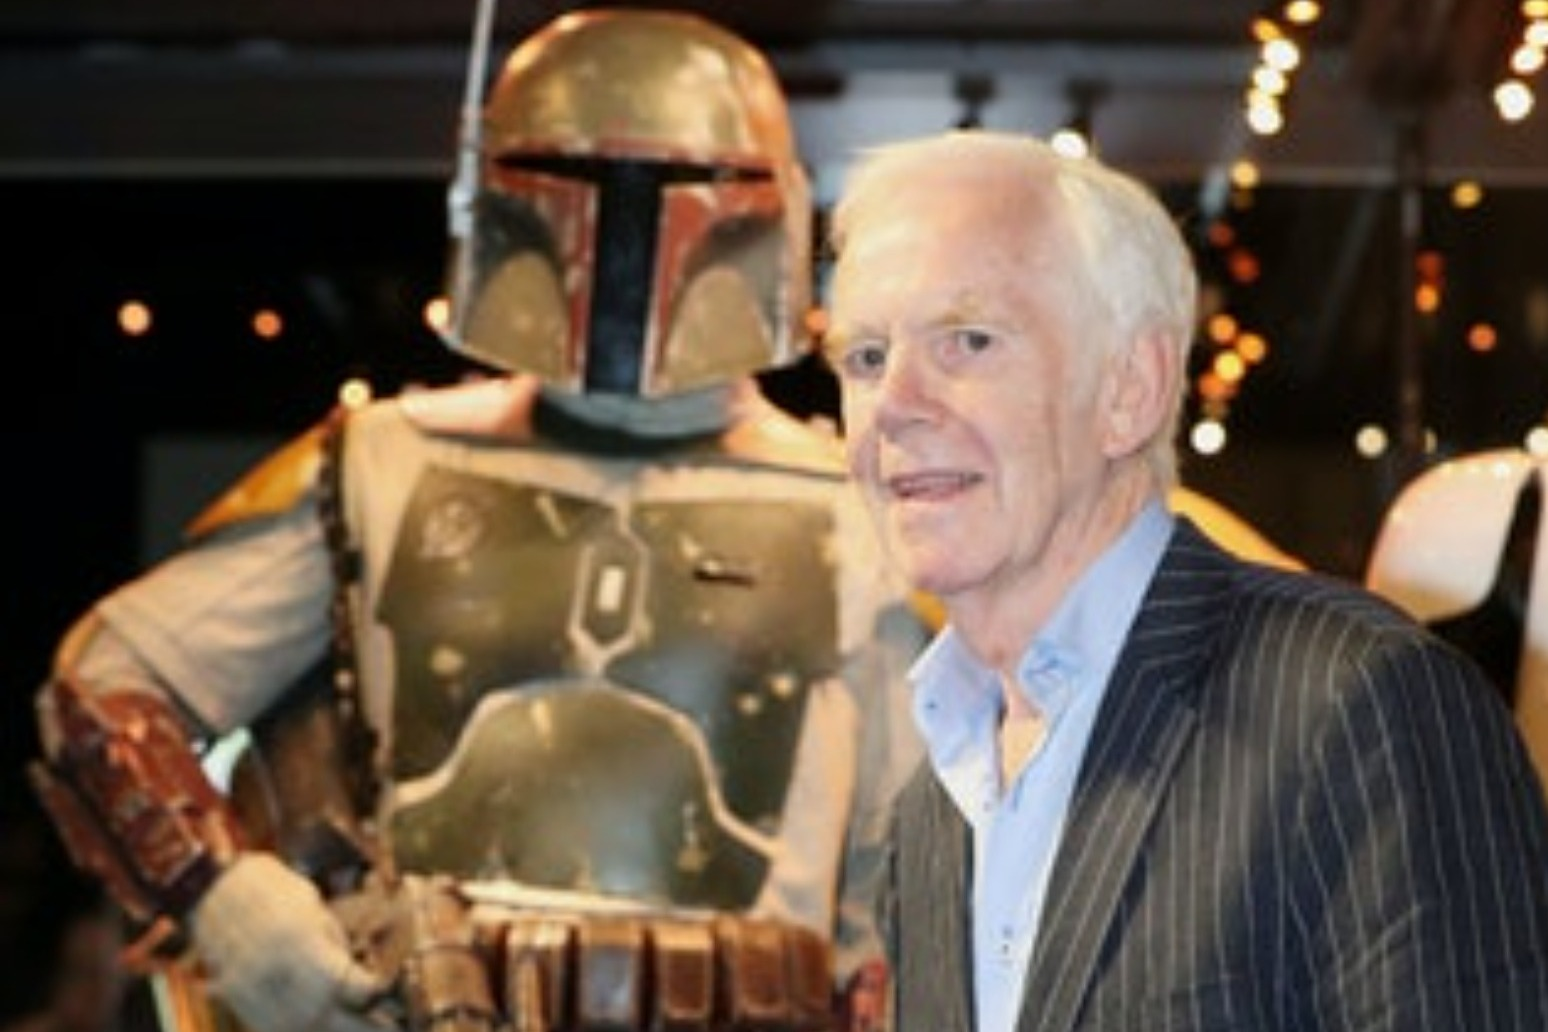 Star Wars actor Jeremy Bulloch dies aged 75